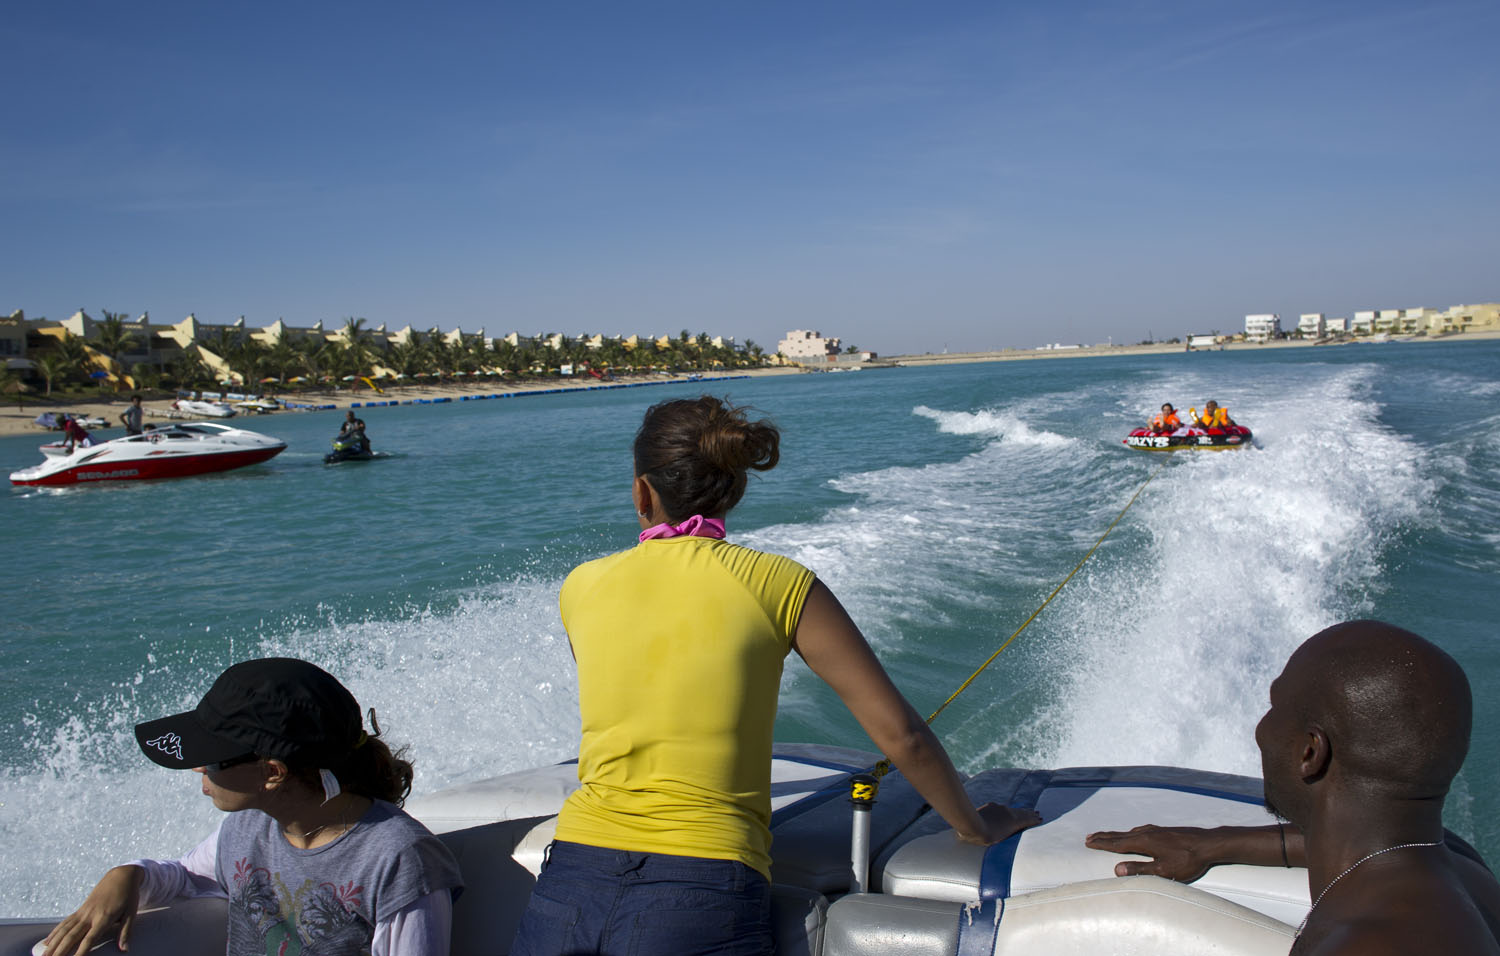 Young Saudis swim and jet ski at Durrat al Aruz, outside of Jeddah, Saudi Arabia, June 15, 2011. The beaches around Jeddah are some of the few places where Saudi's religious police do not have a presence, and young men and women are able to swim and hang out freely.